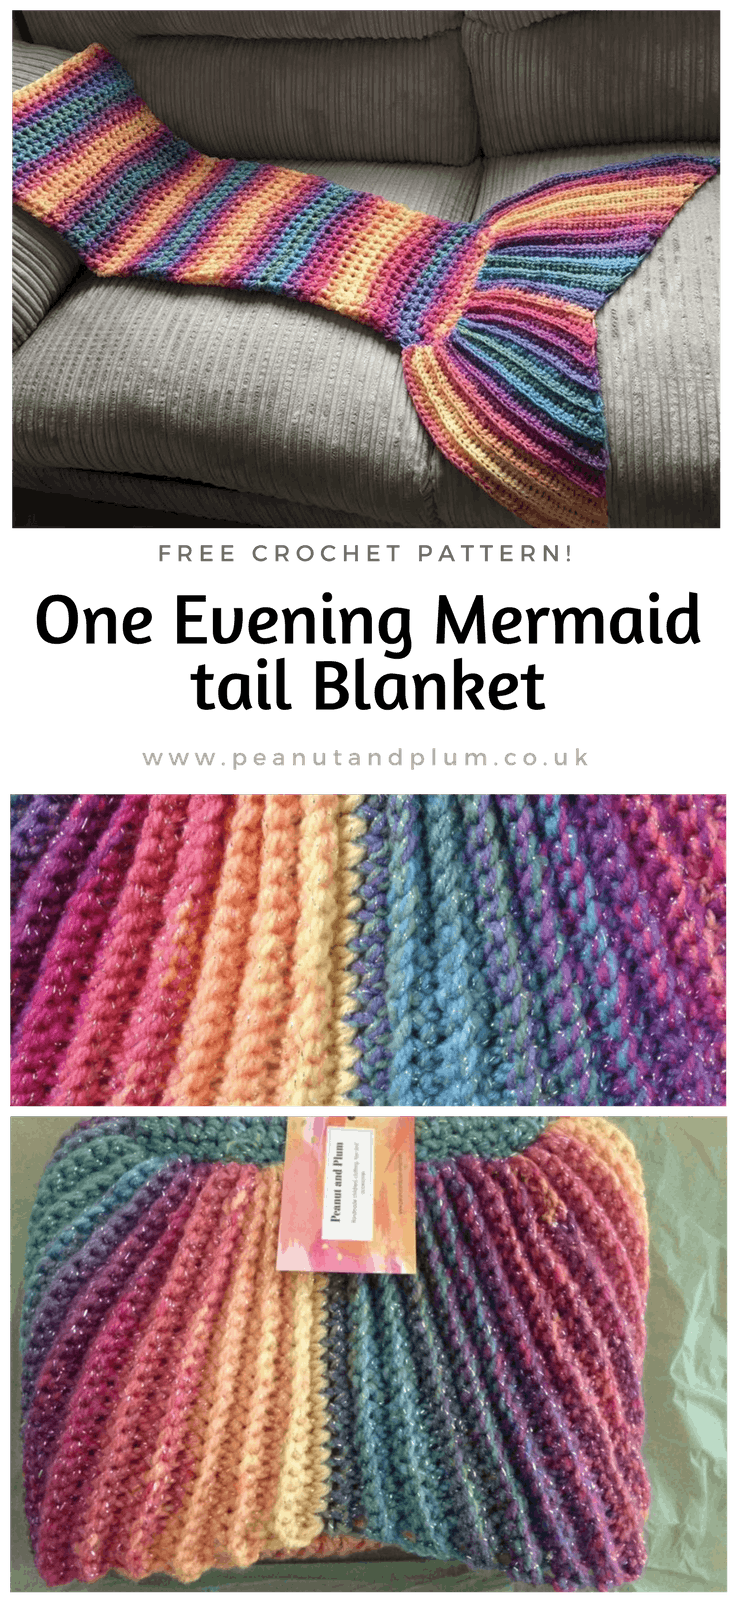 One evening Crochet Mermaid tail blanket pattern - Peanut and Plum